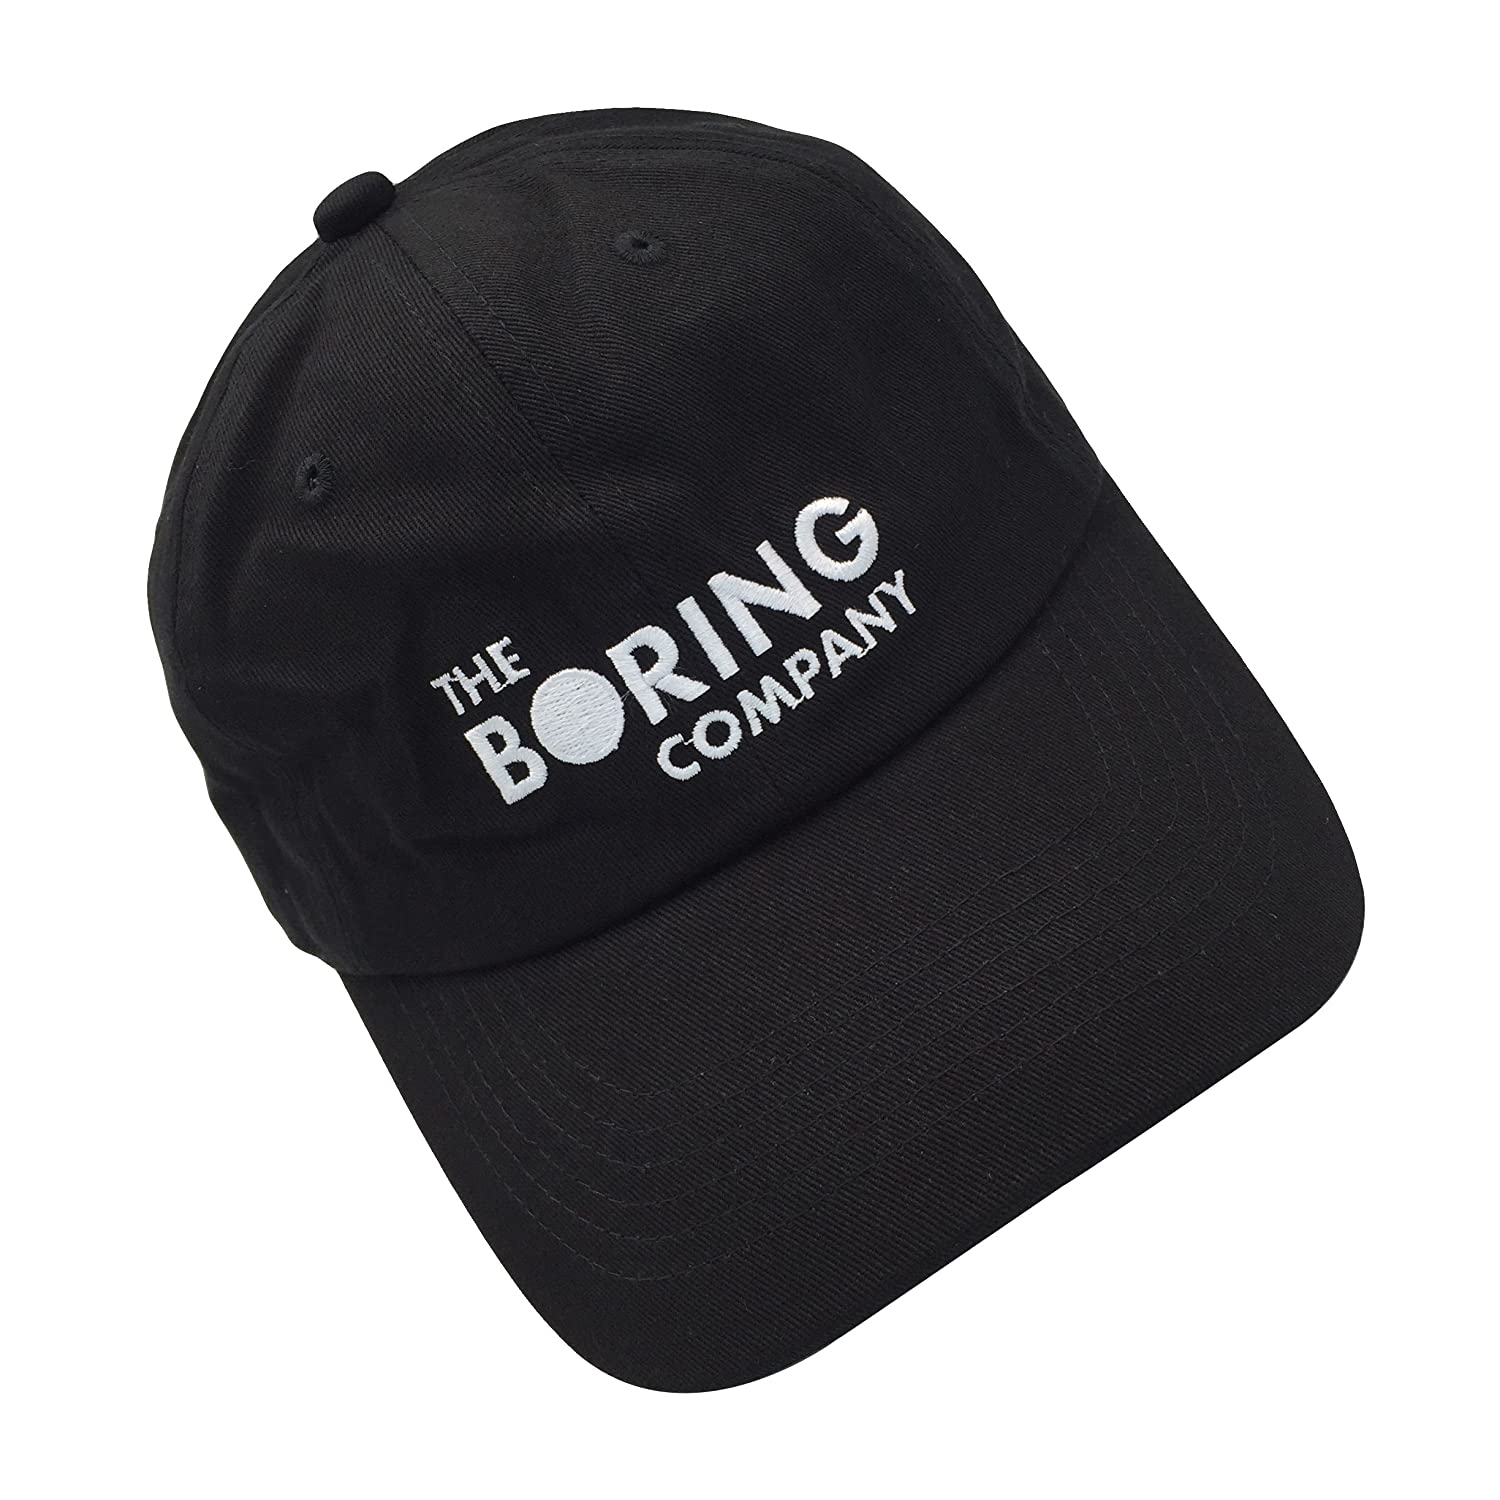 eff40e7f Amazon.com: binbin lin The Boring Company Cap Spacex Hat Dad Hat Baseball  Cap Mens Dad Hat for Men Black: Clothing